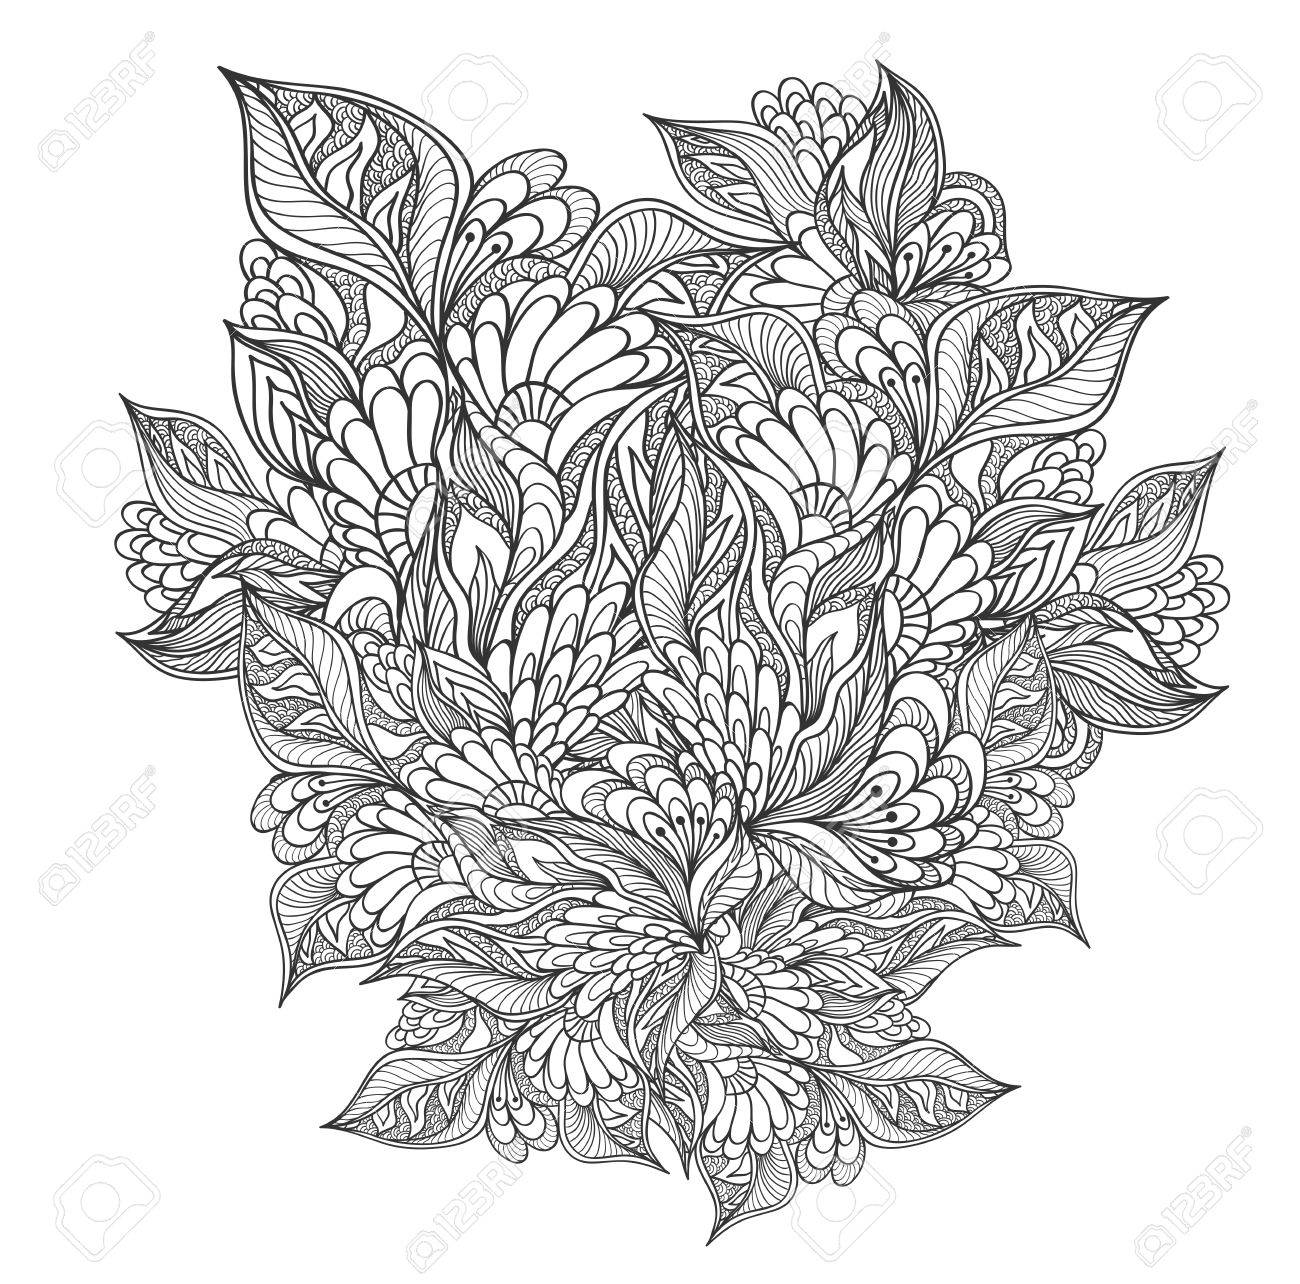 zen doodle floral flowers pattern or texture black on white for coloring page or relax coloring book